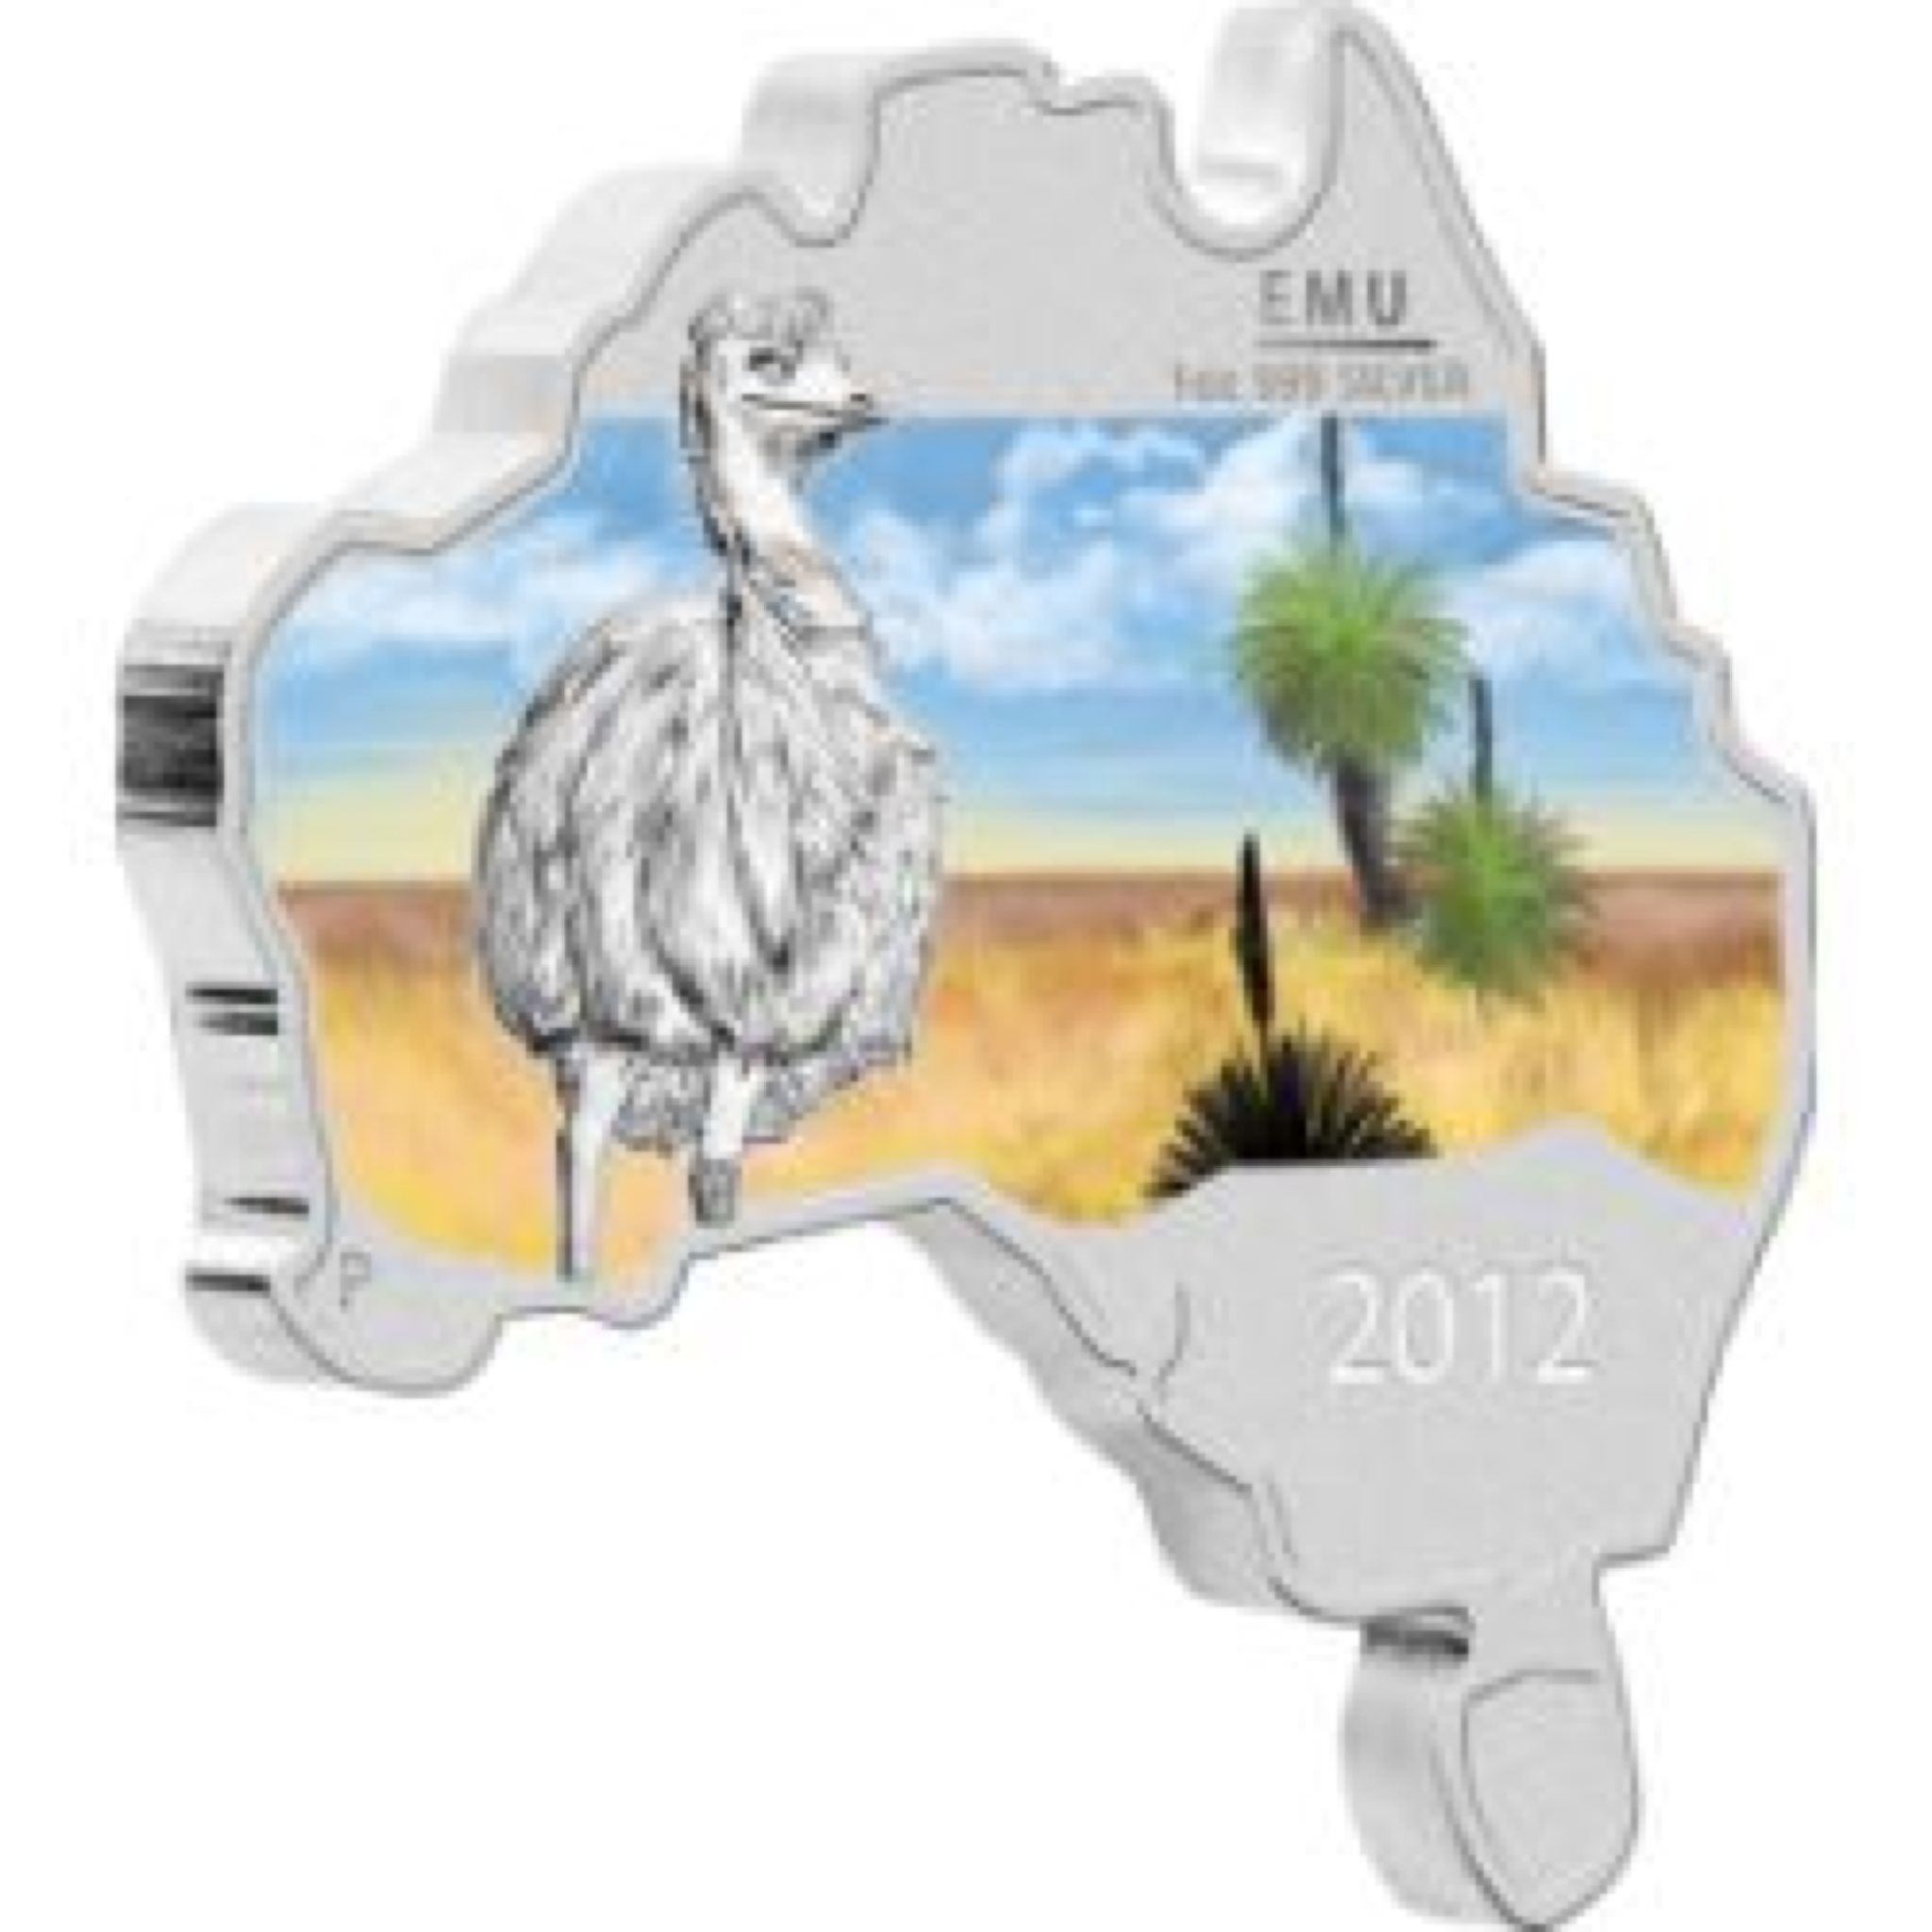 2012 Emu 1oz Map Shape Coin - $1 (2012) front image (front cover)